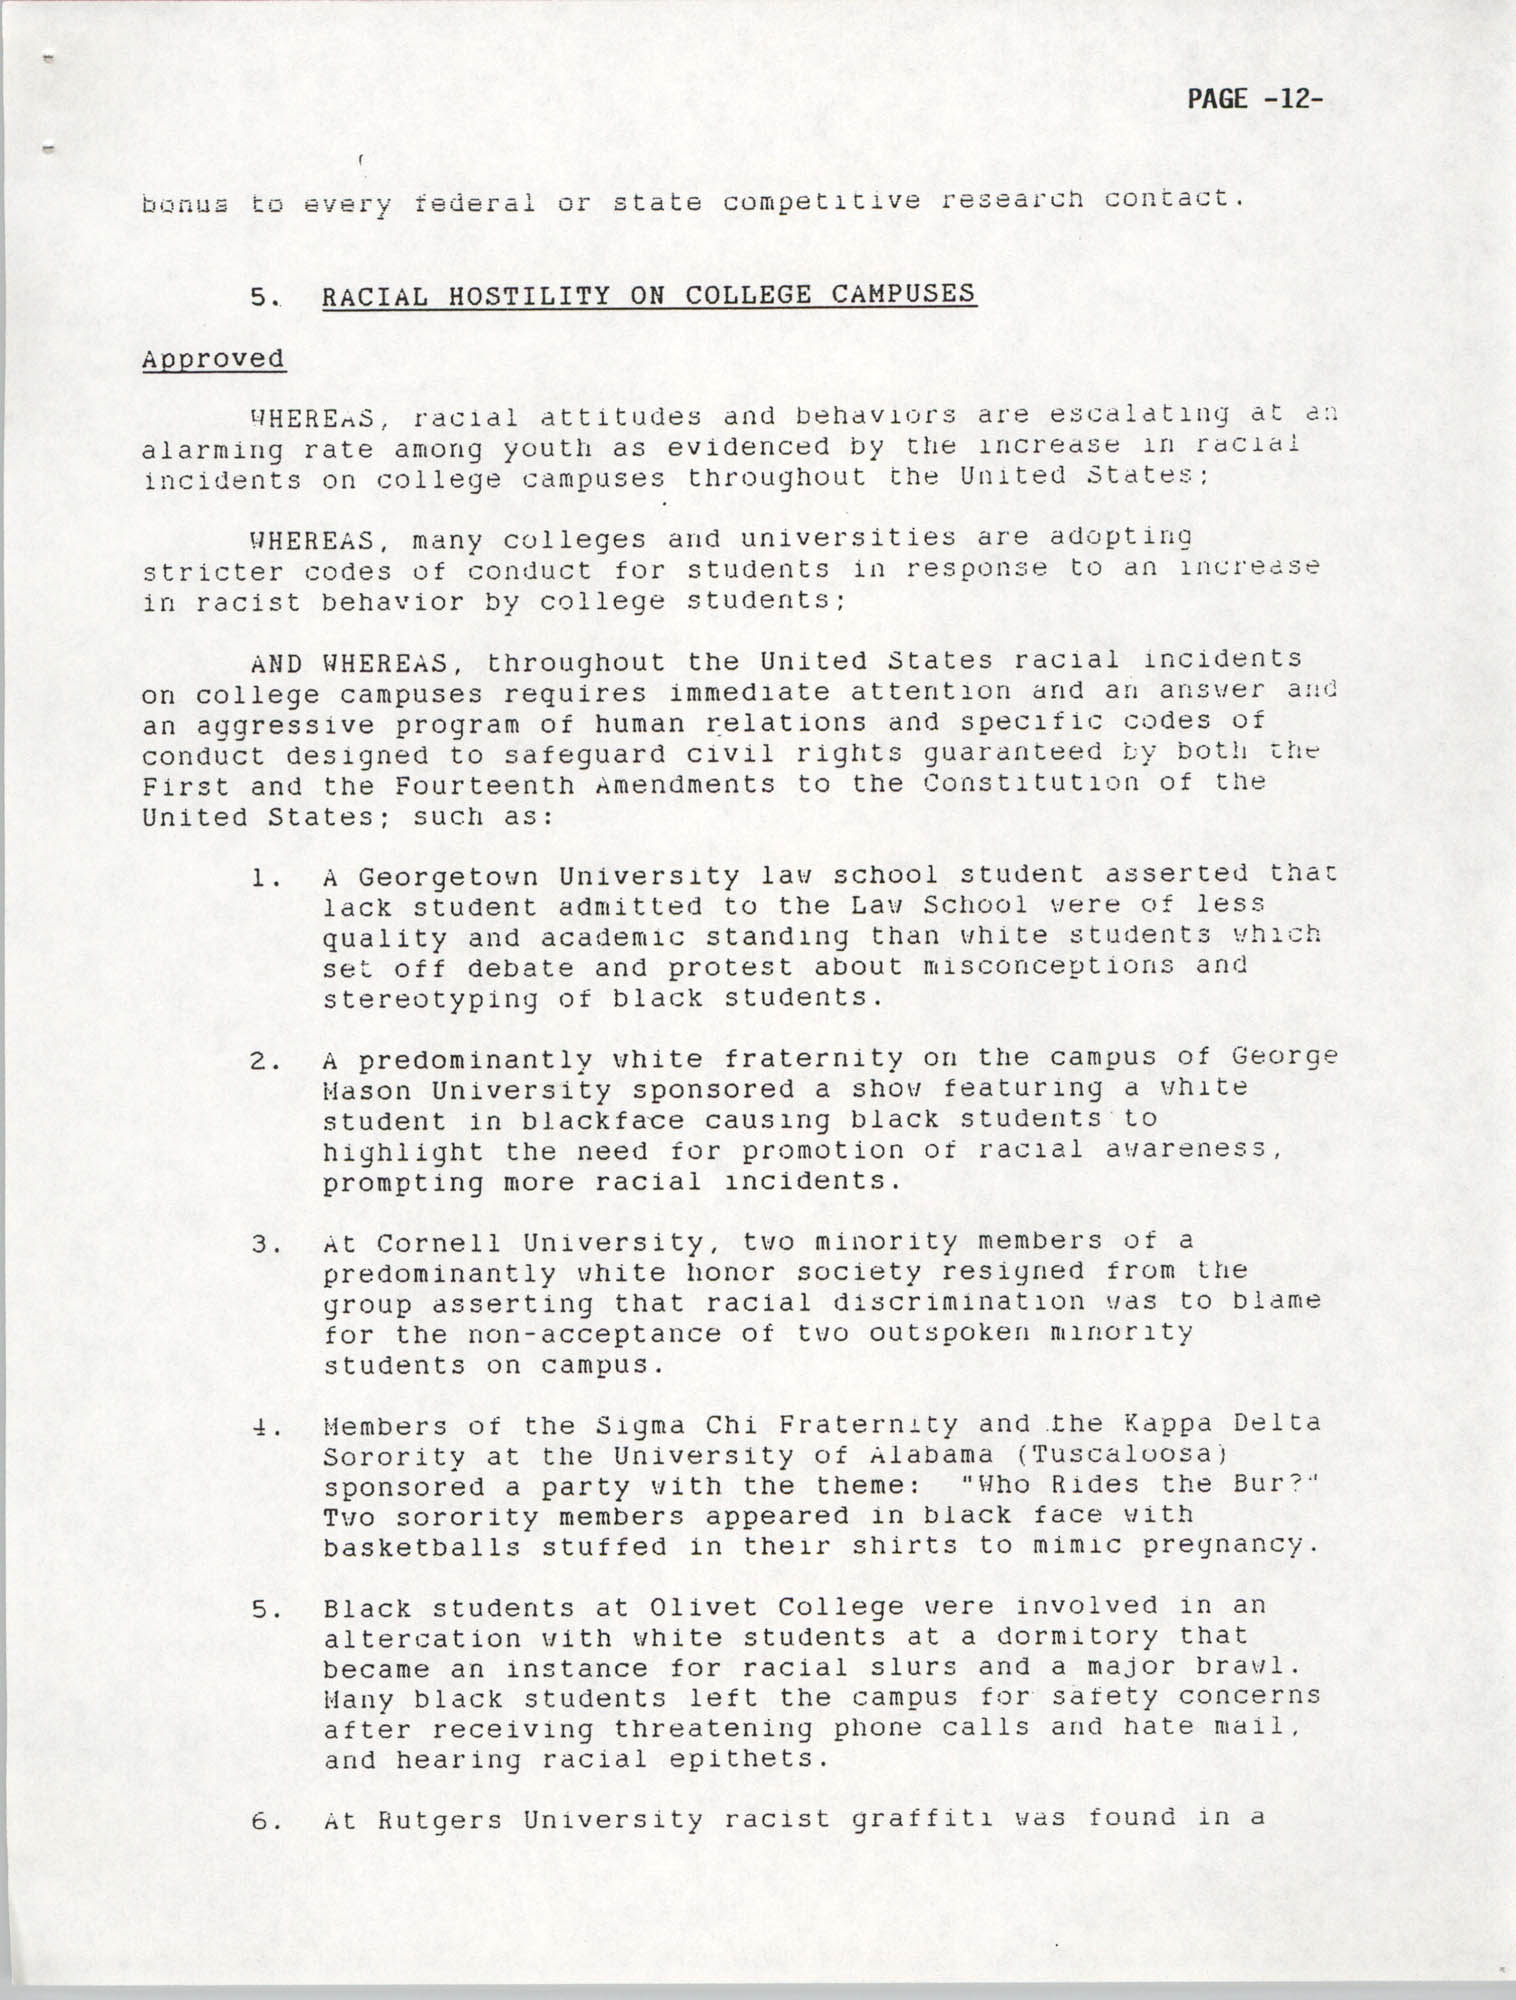 Resolutions Submitted Under Article X, Section 2 of the Constitution of the NAACP, 1992, Page 12